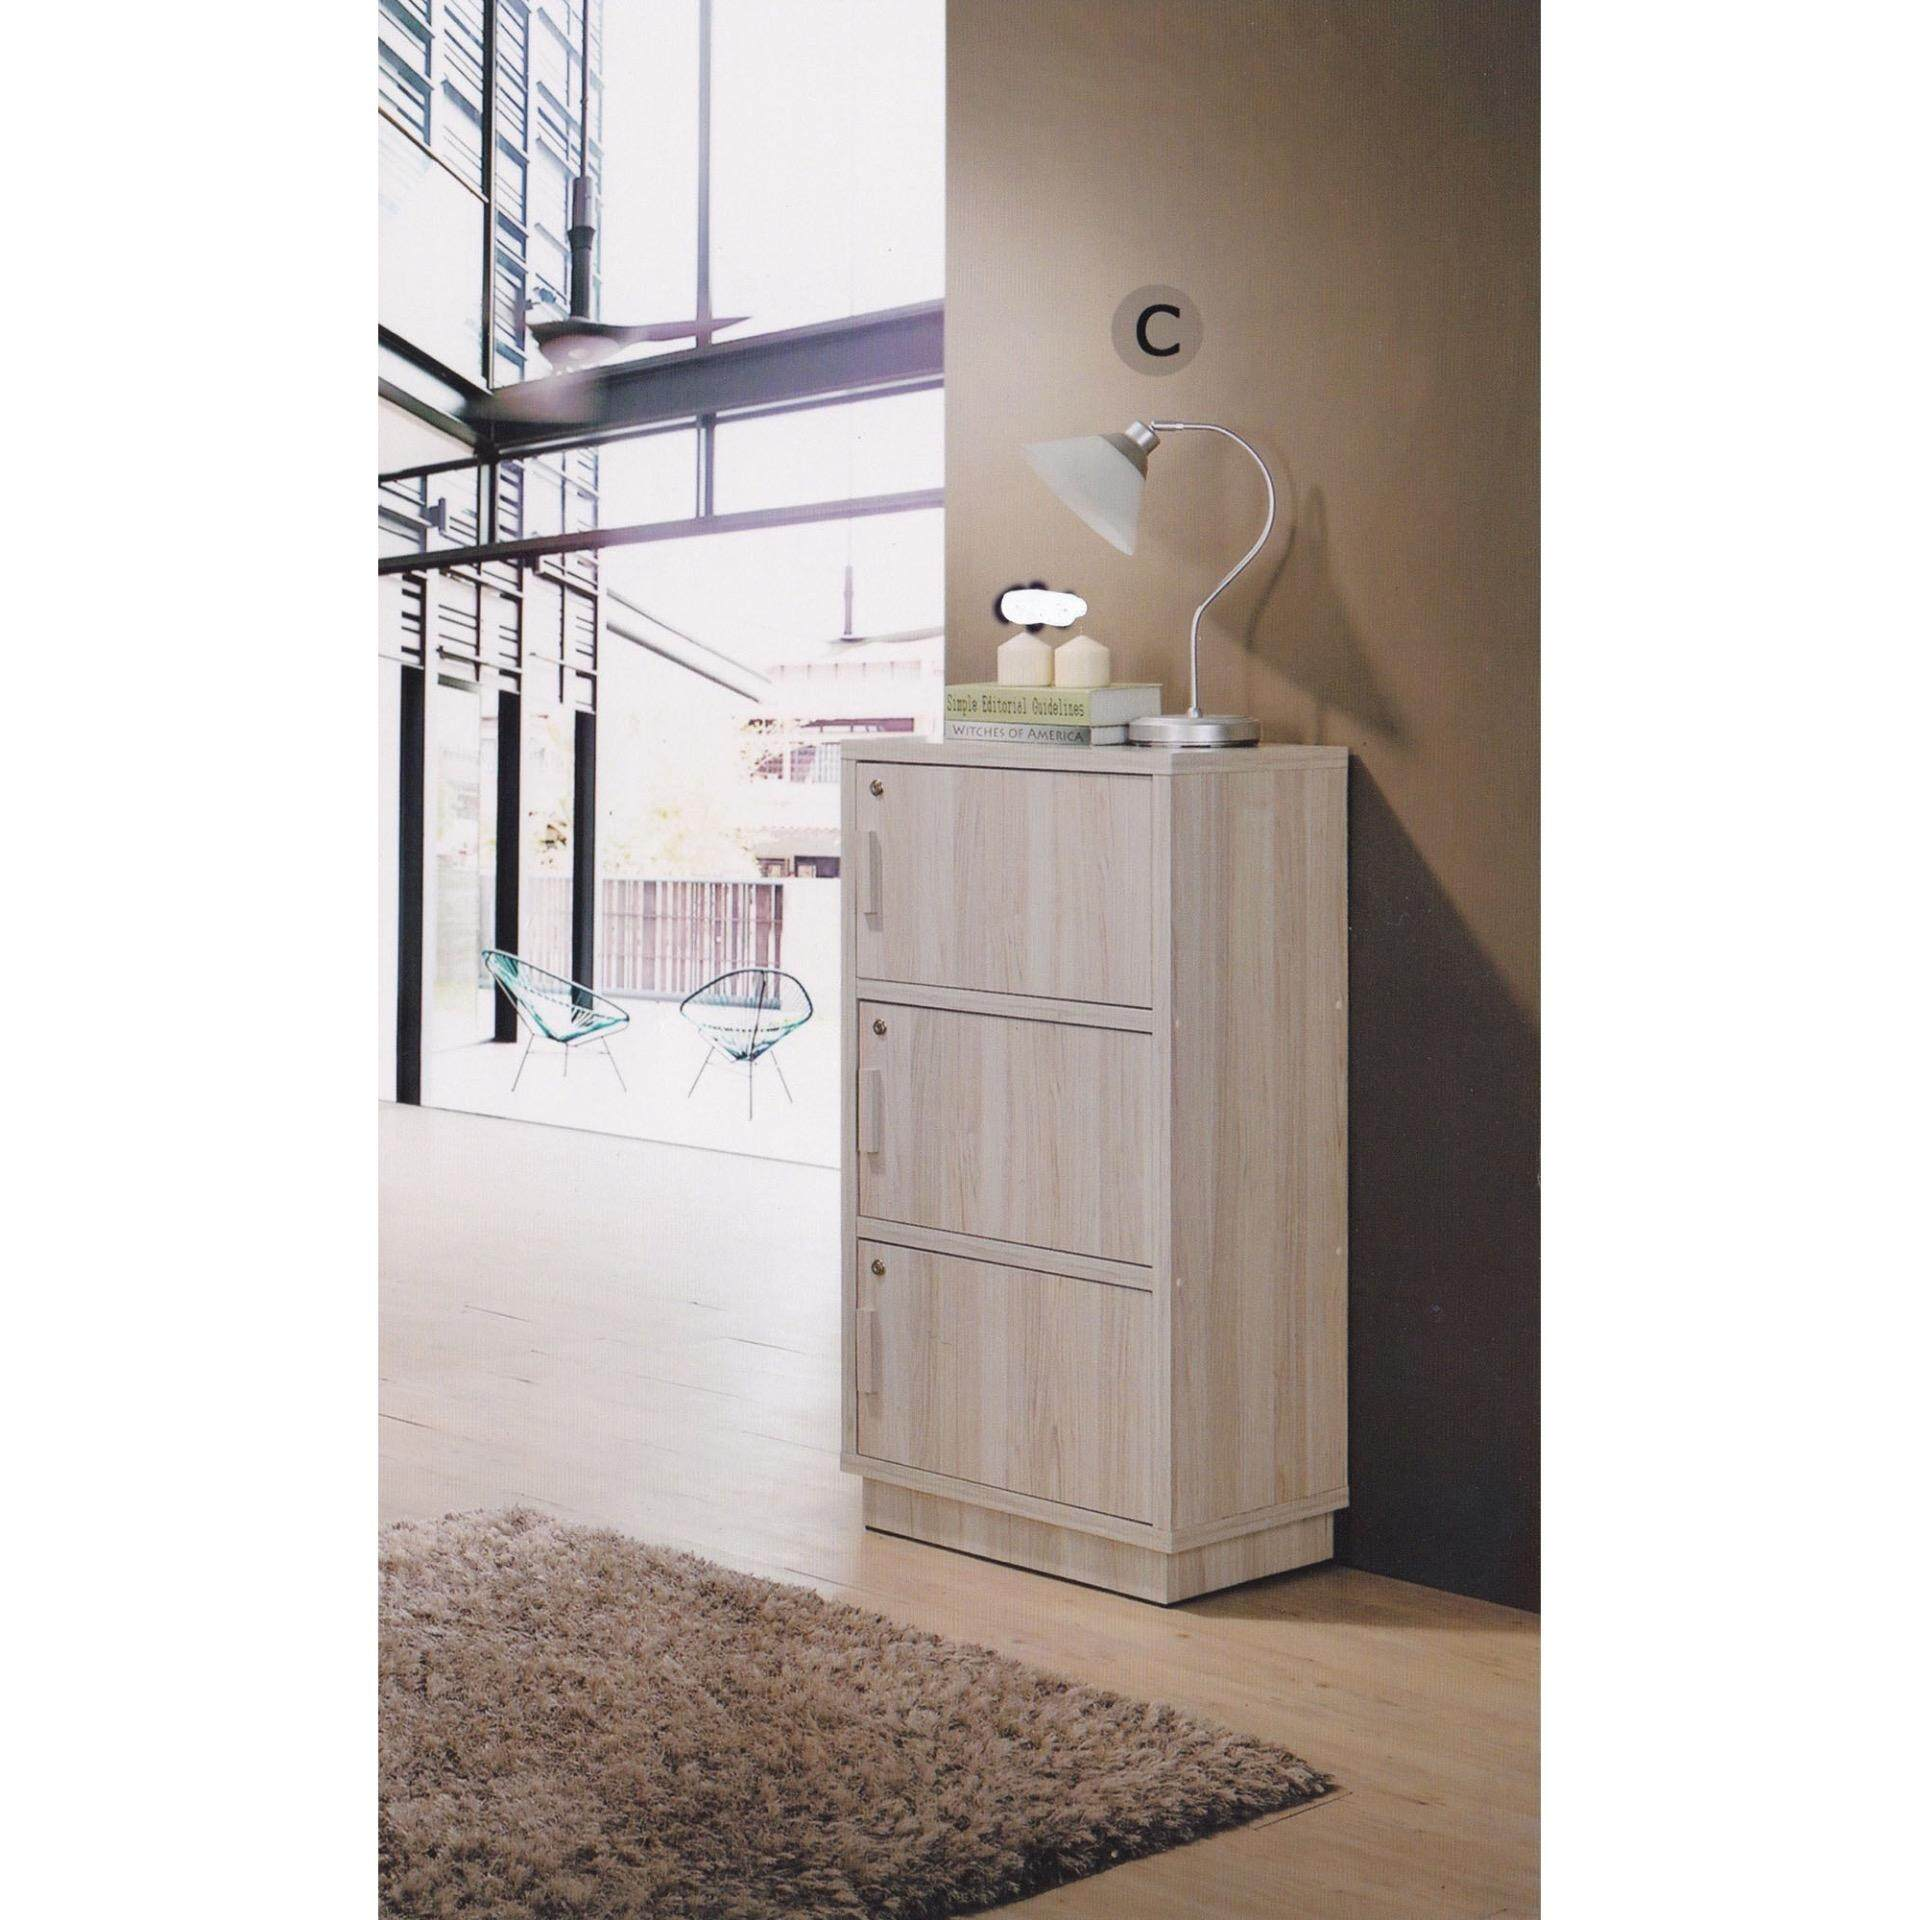 3-Door Solid Storage Box Cabinet Clothes Cabinet Wood (Cream Colour) L590MM X W390MM X H1180MM Pre Order 1 Week